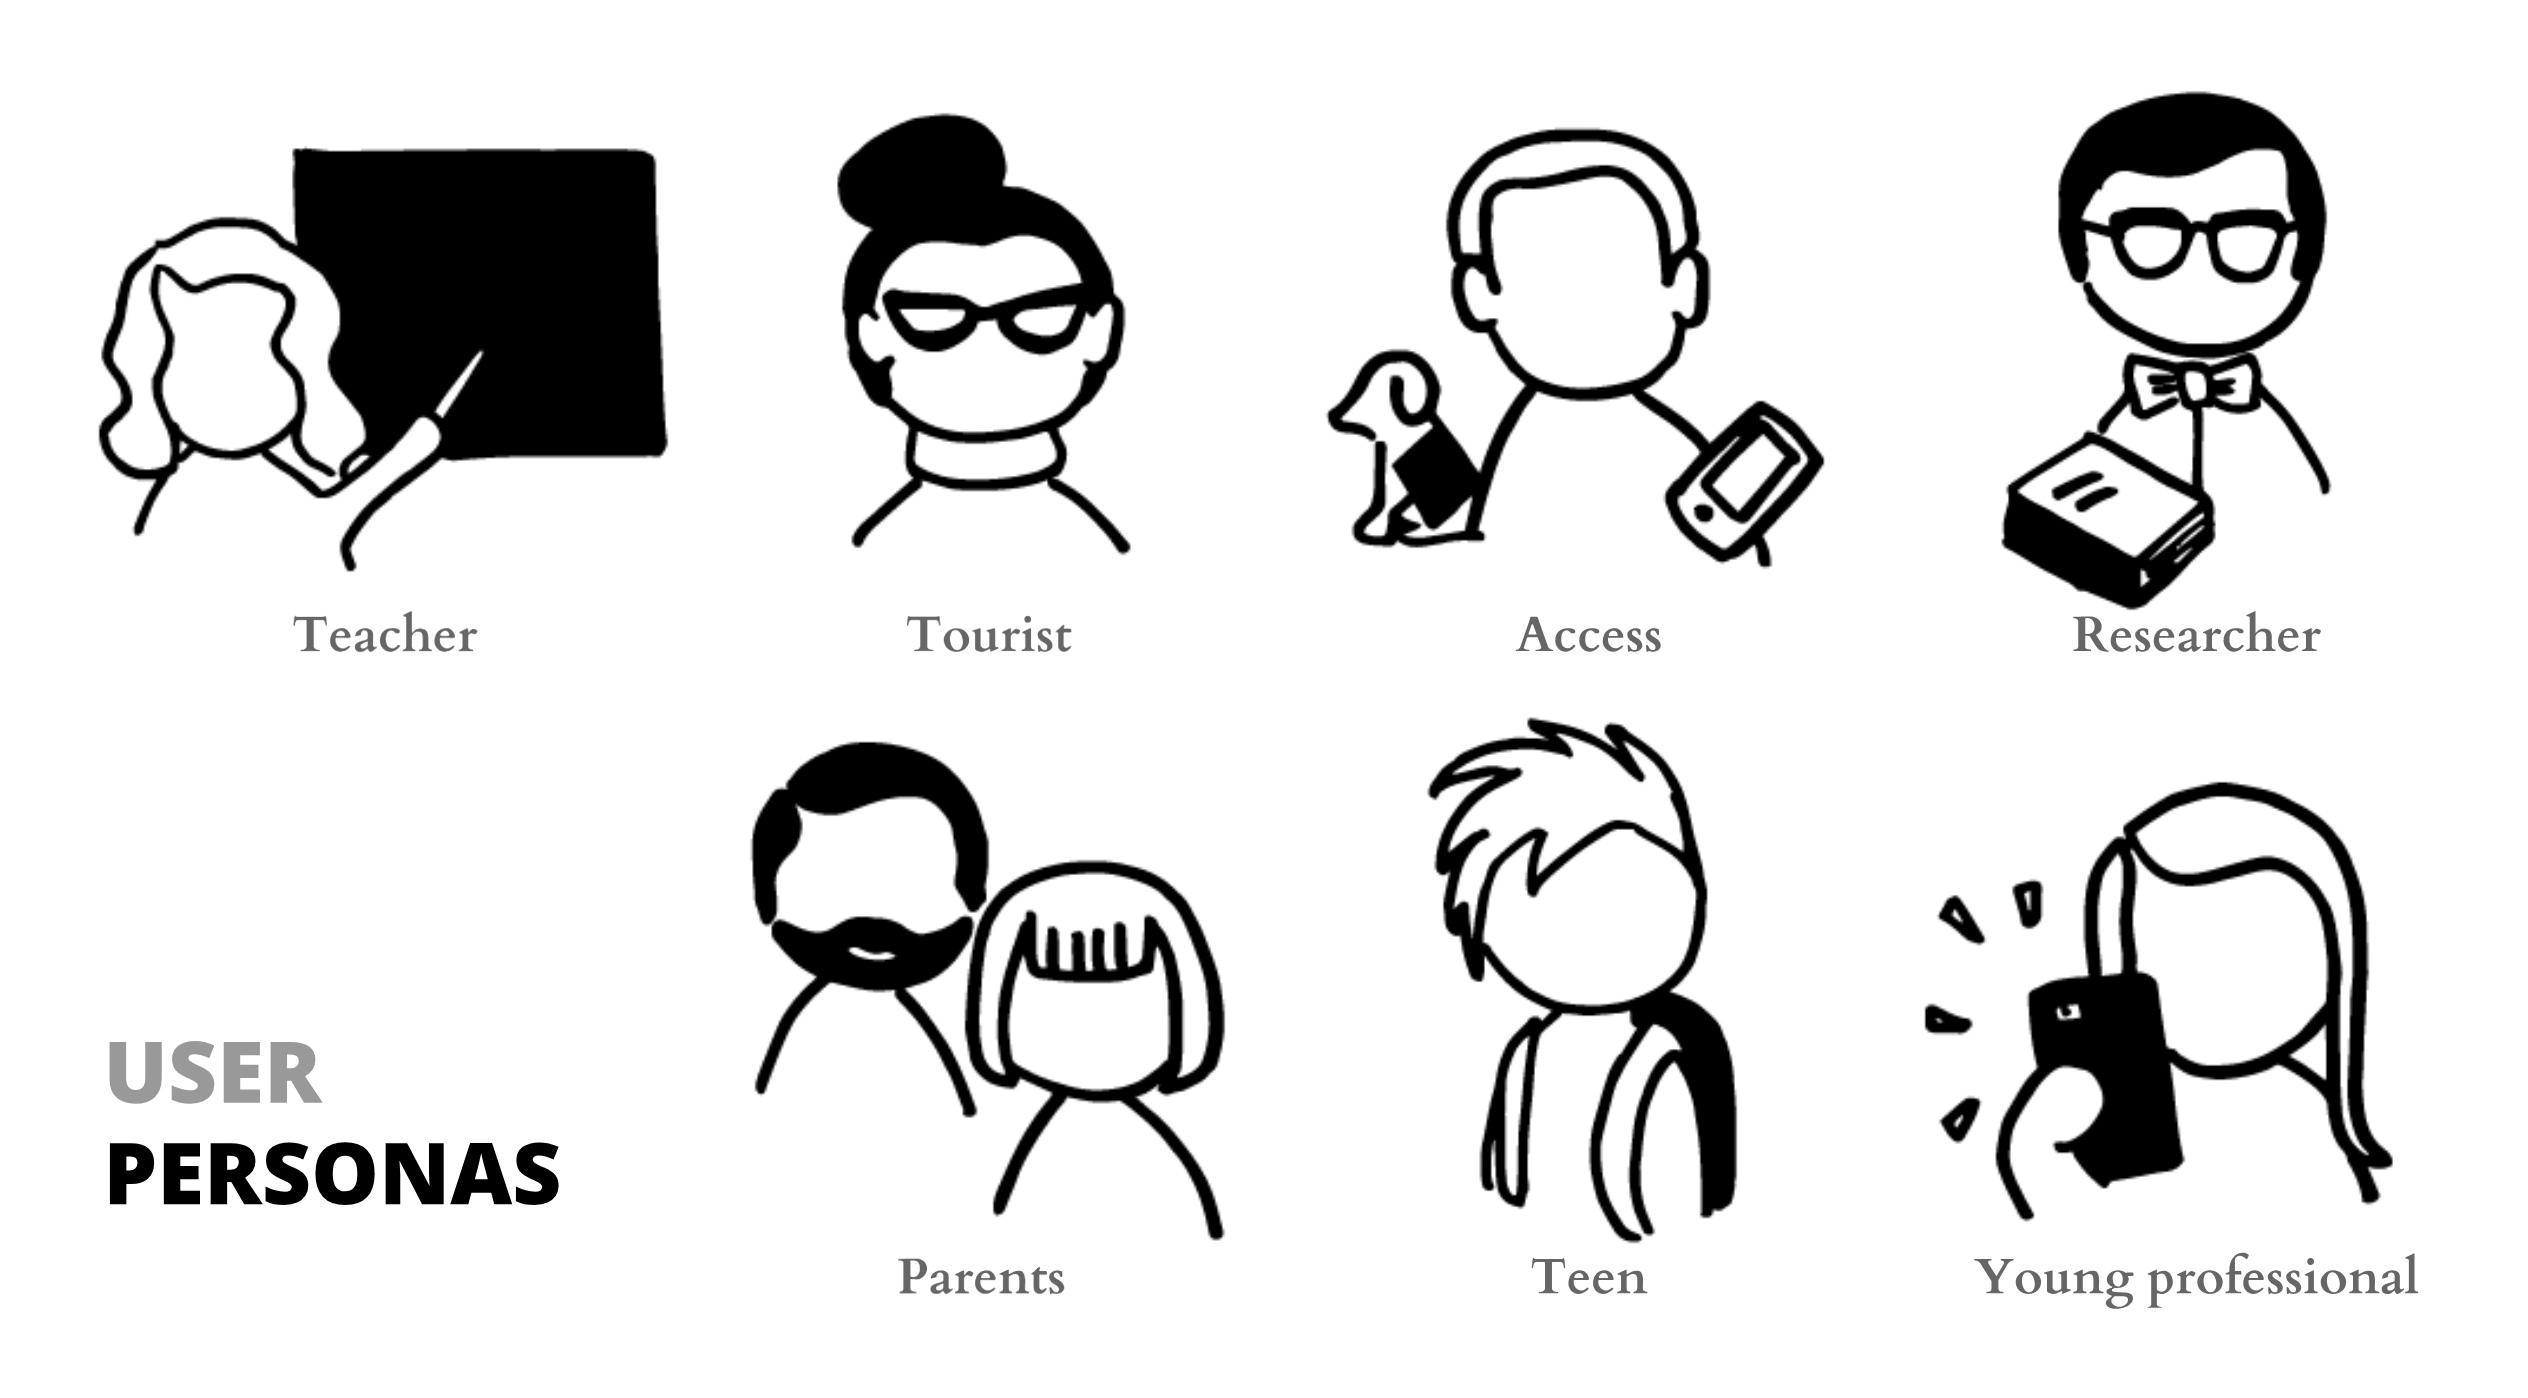 Diagram of 7 user personas